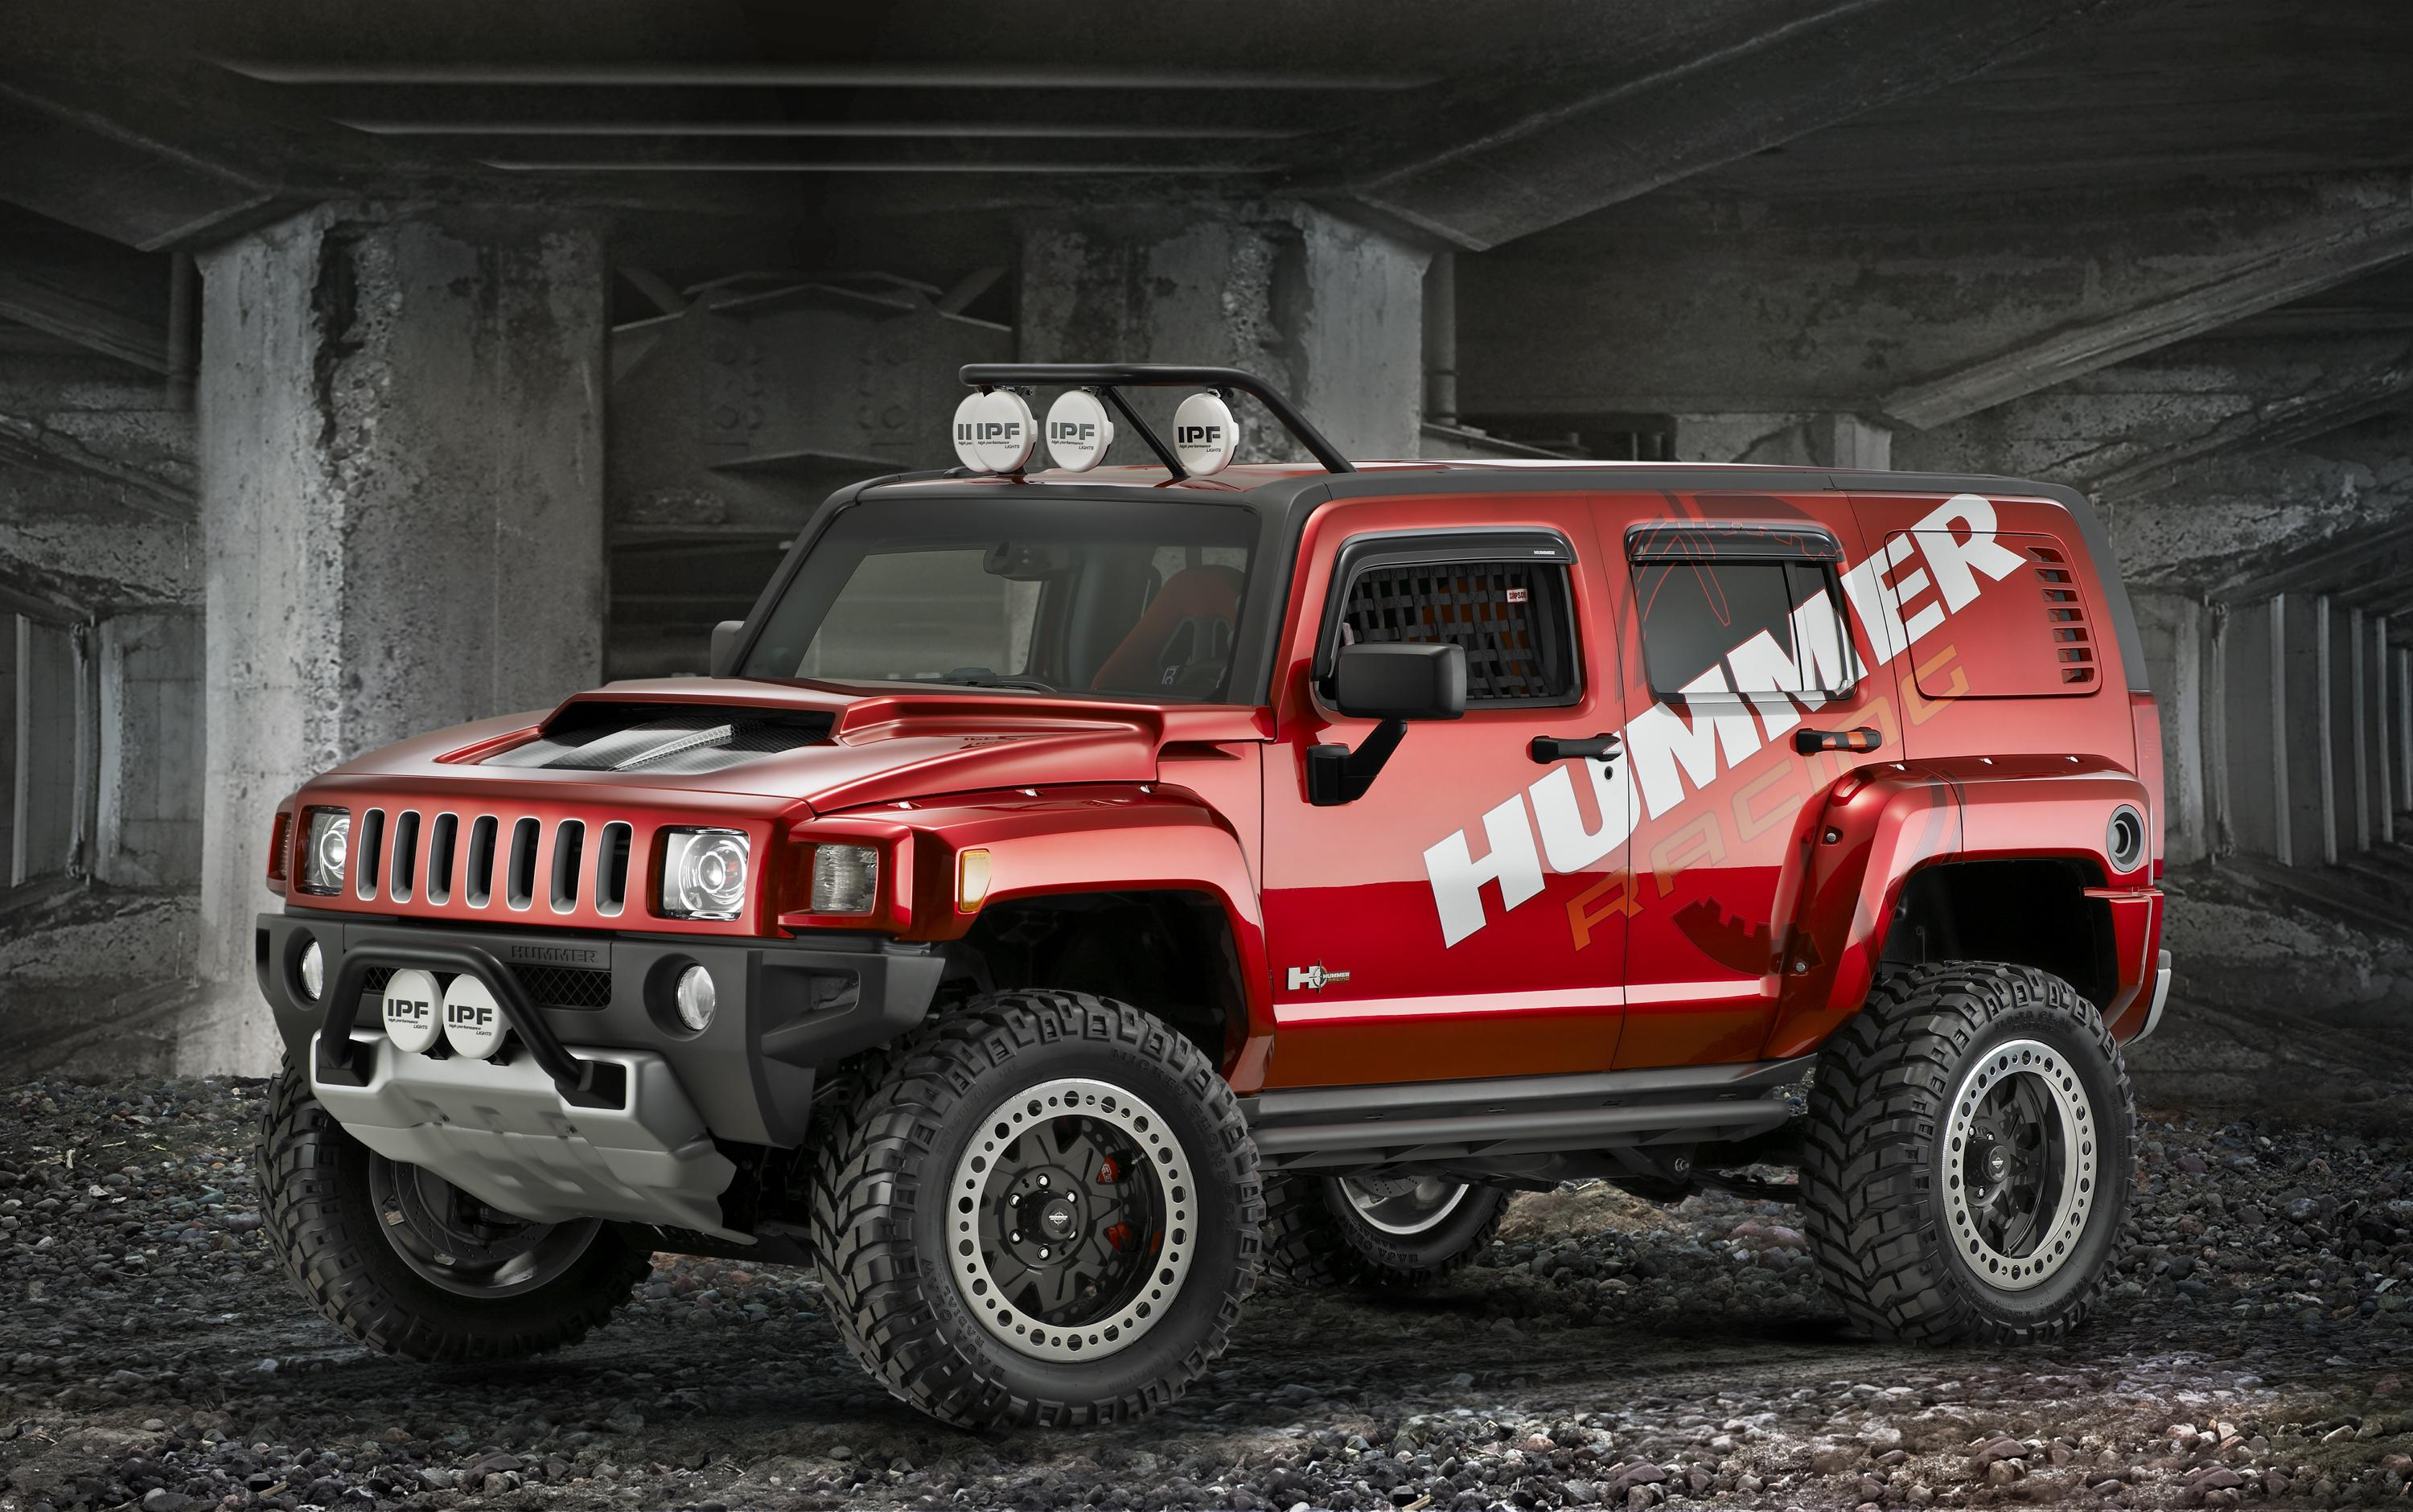 2008 Hummer H3R Off Road Review - Top Speed